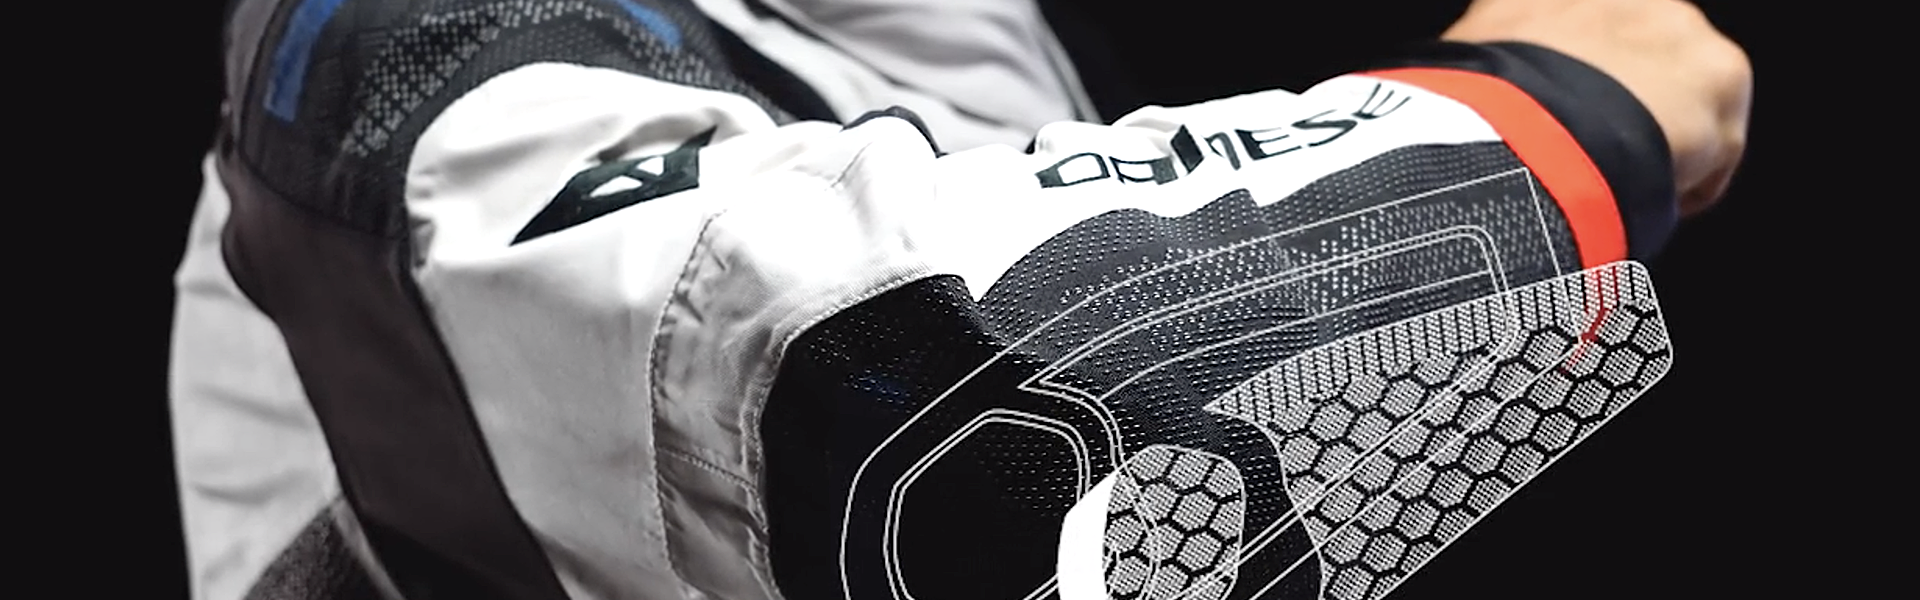 Dainese: technology and innovation